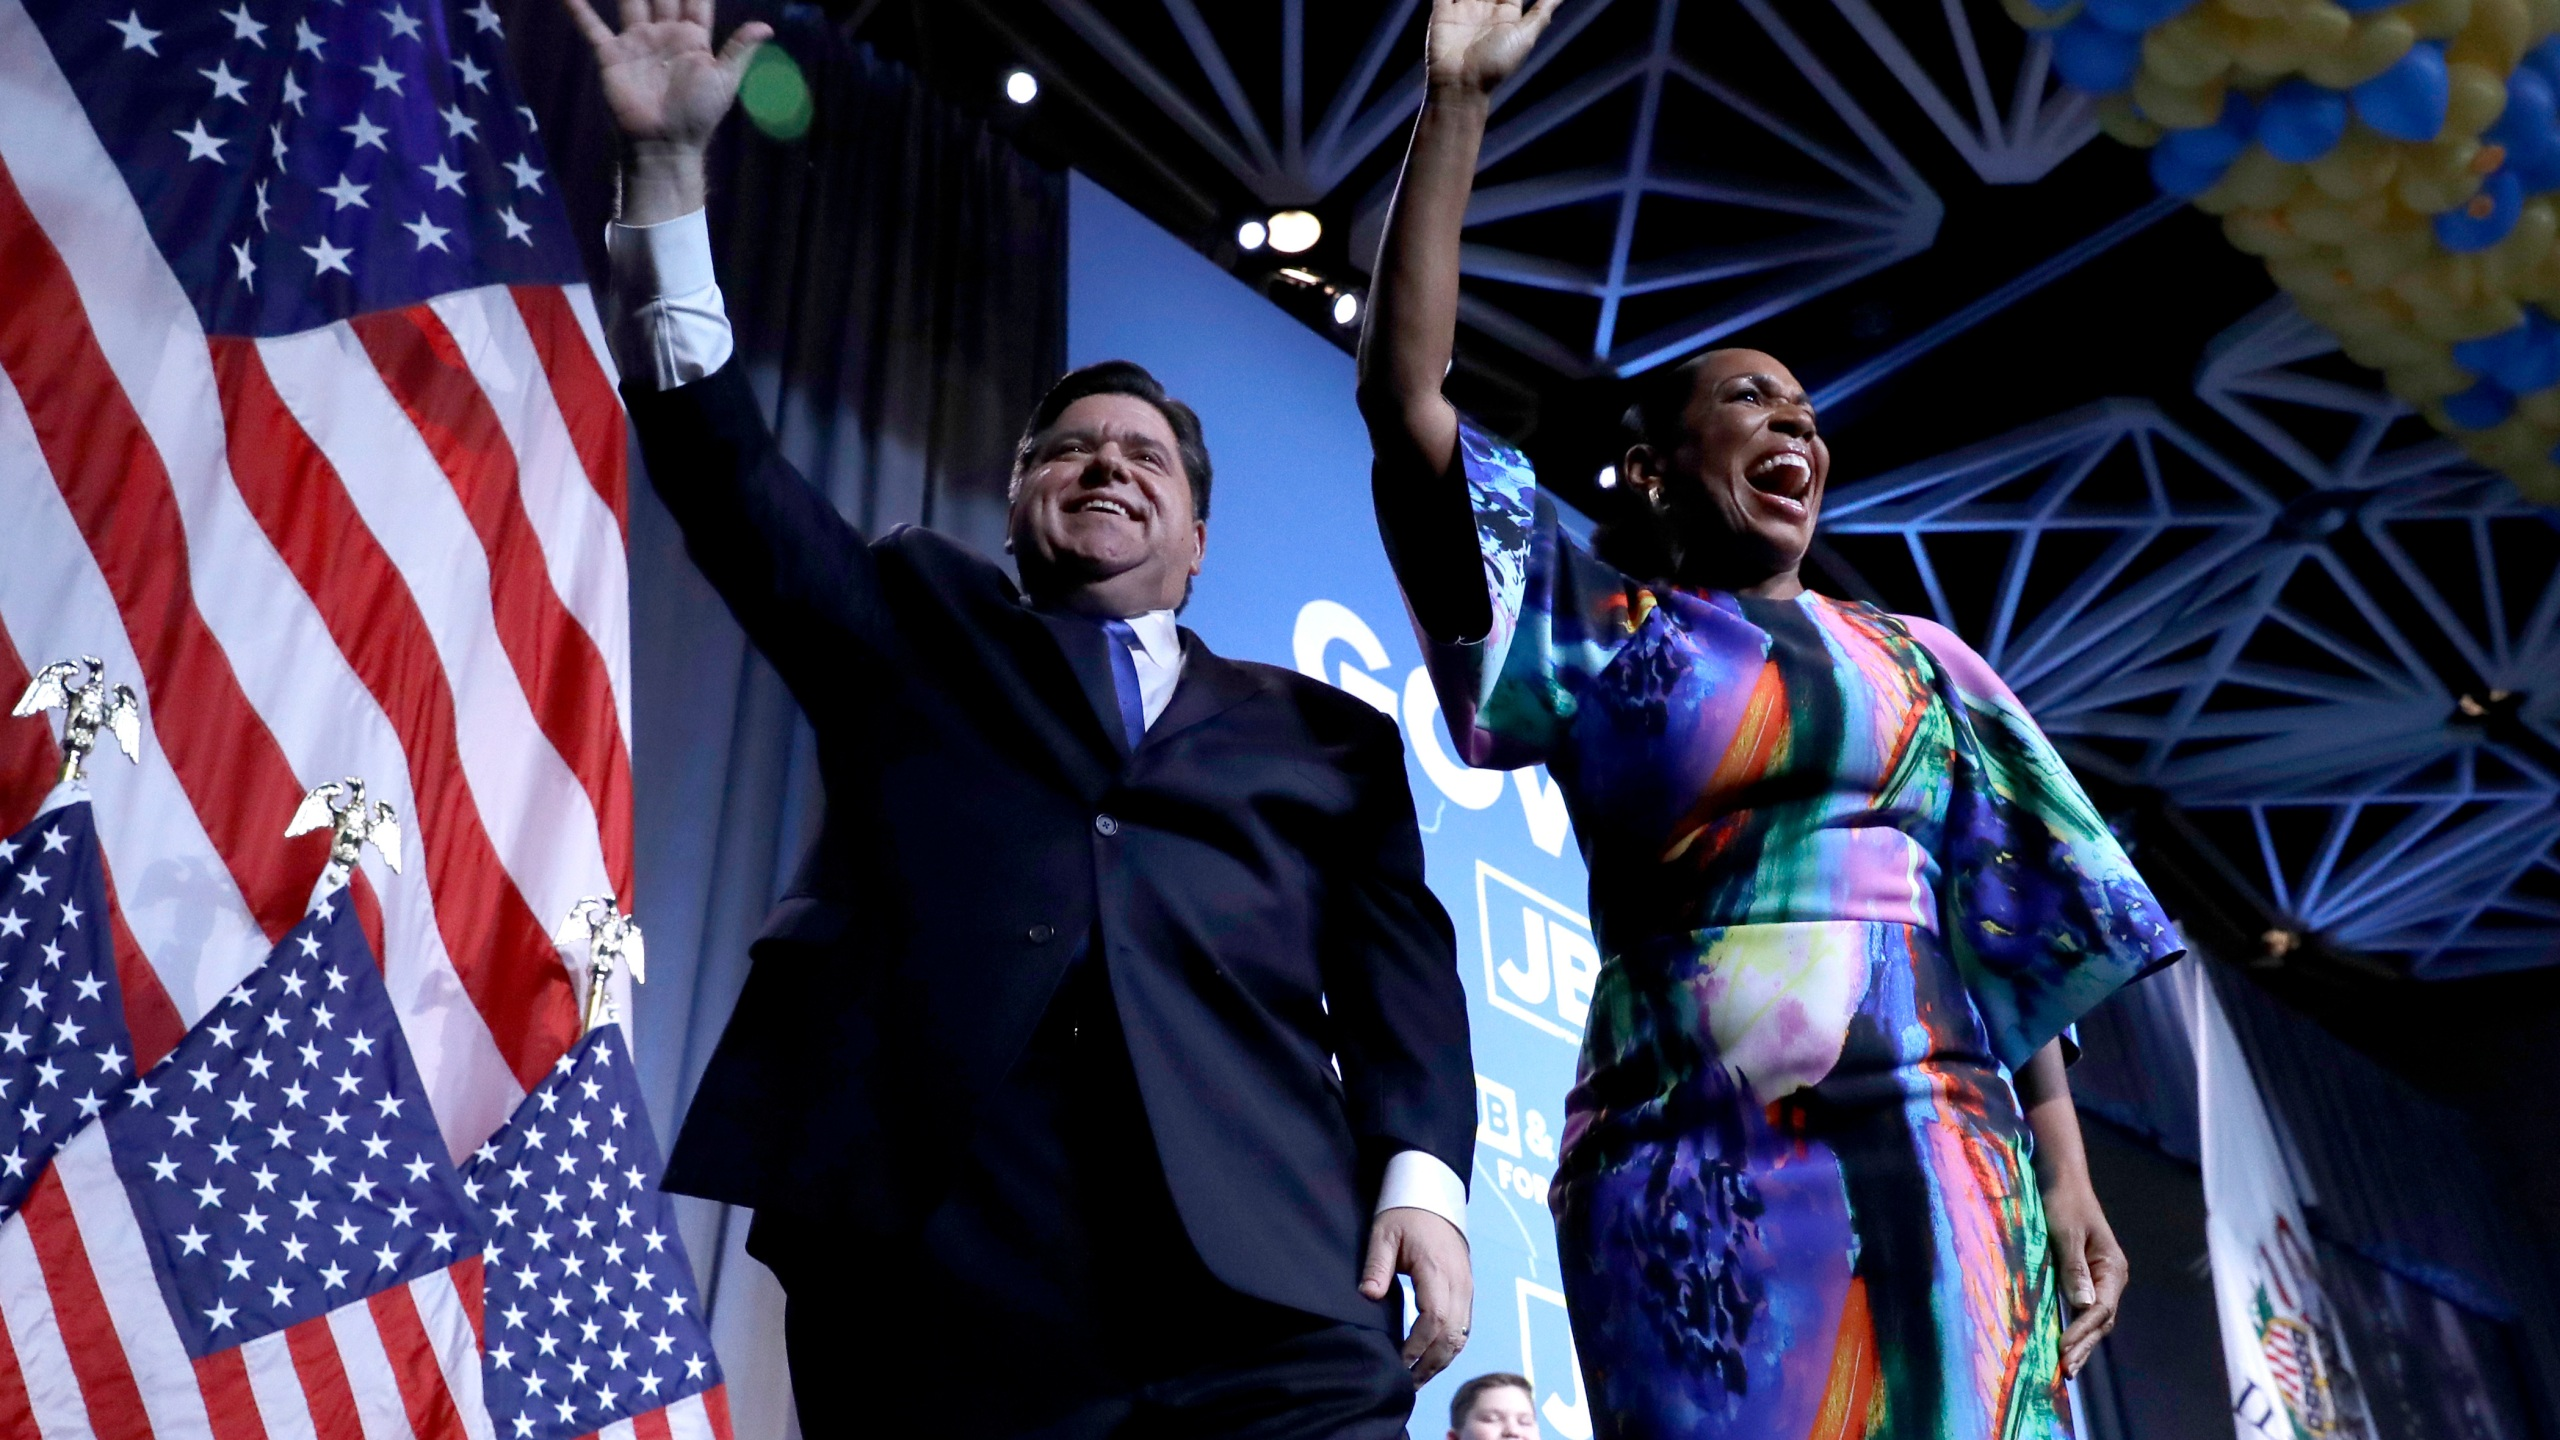 Election_2018_Governor_Pritzker_Illinois_83560-159532.jpg95383198